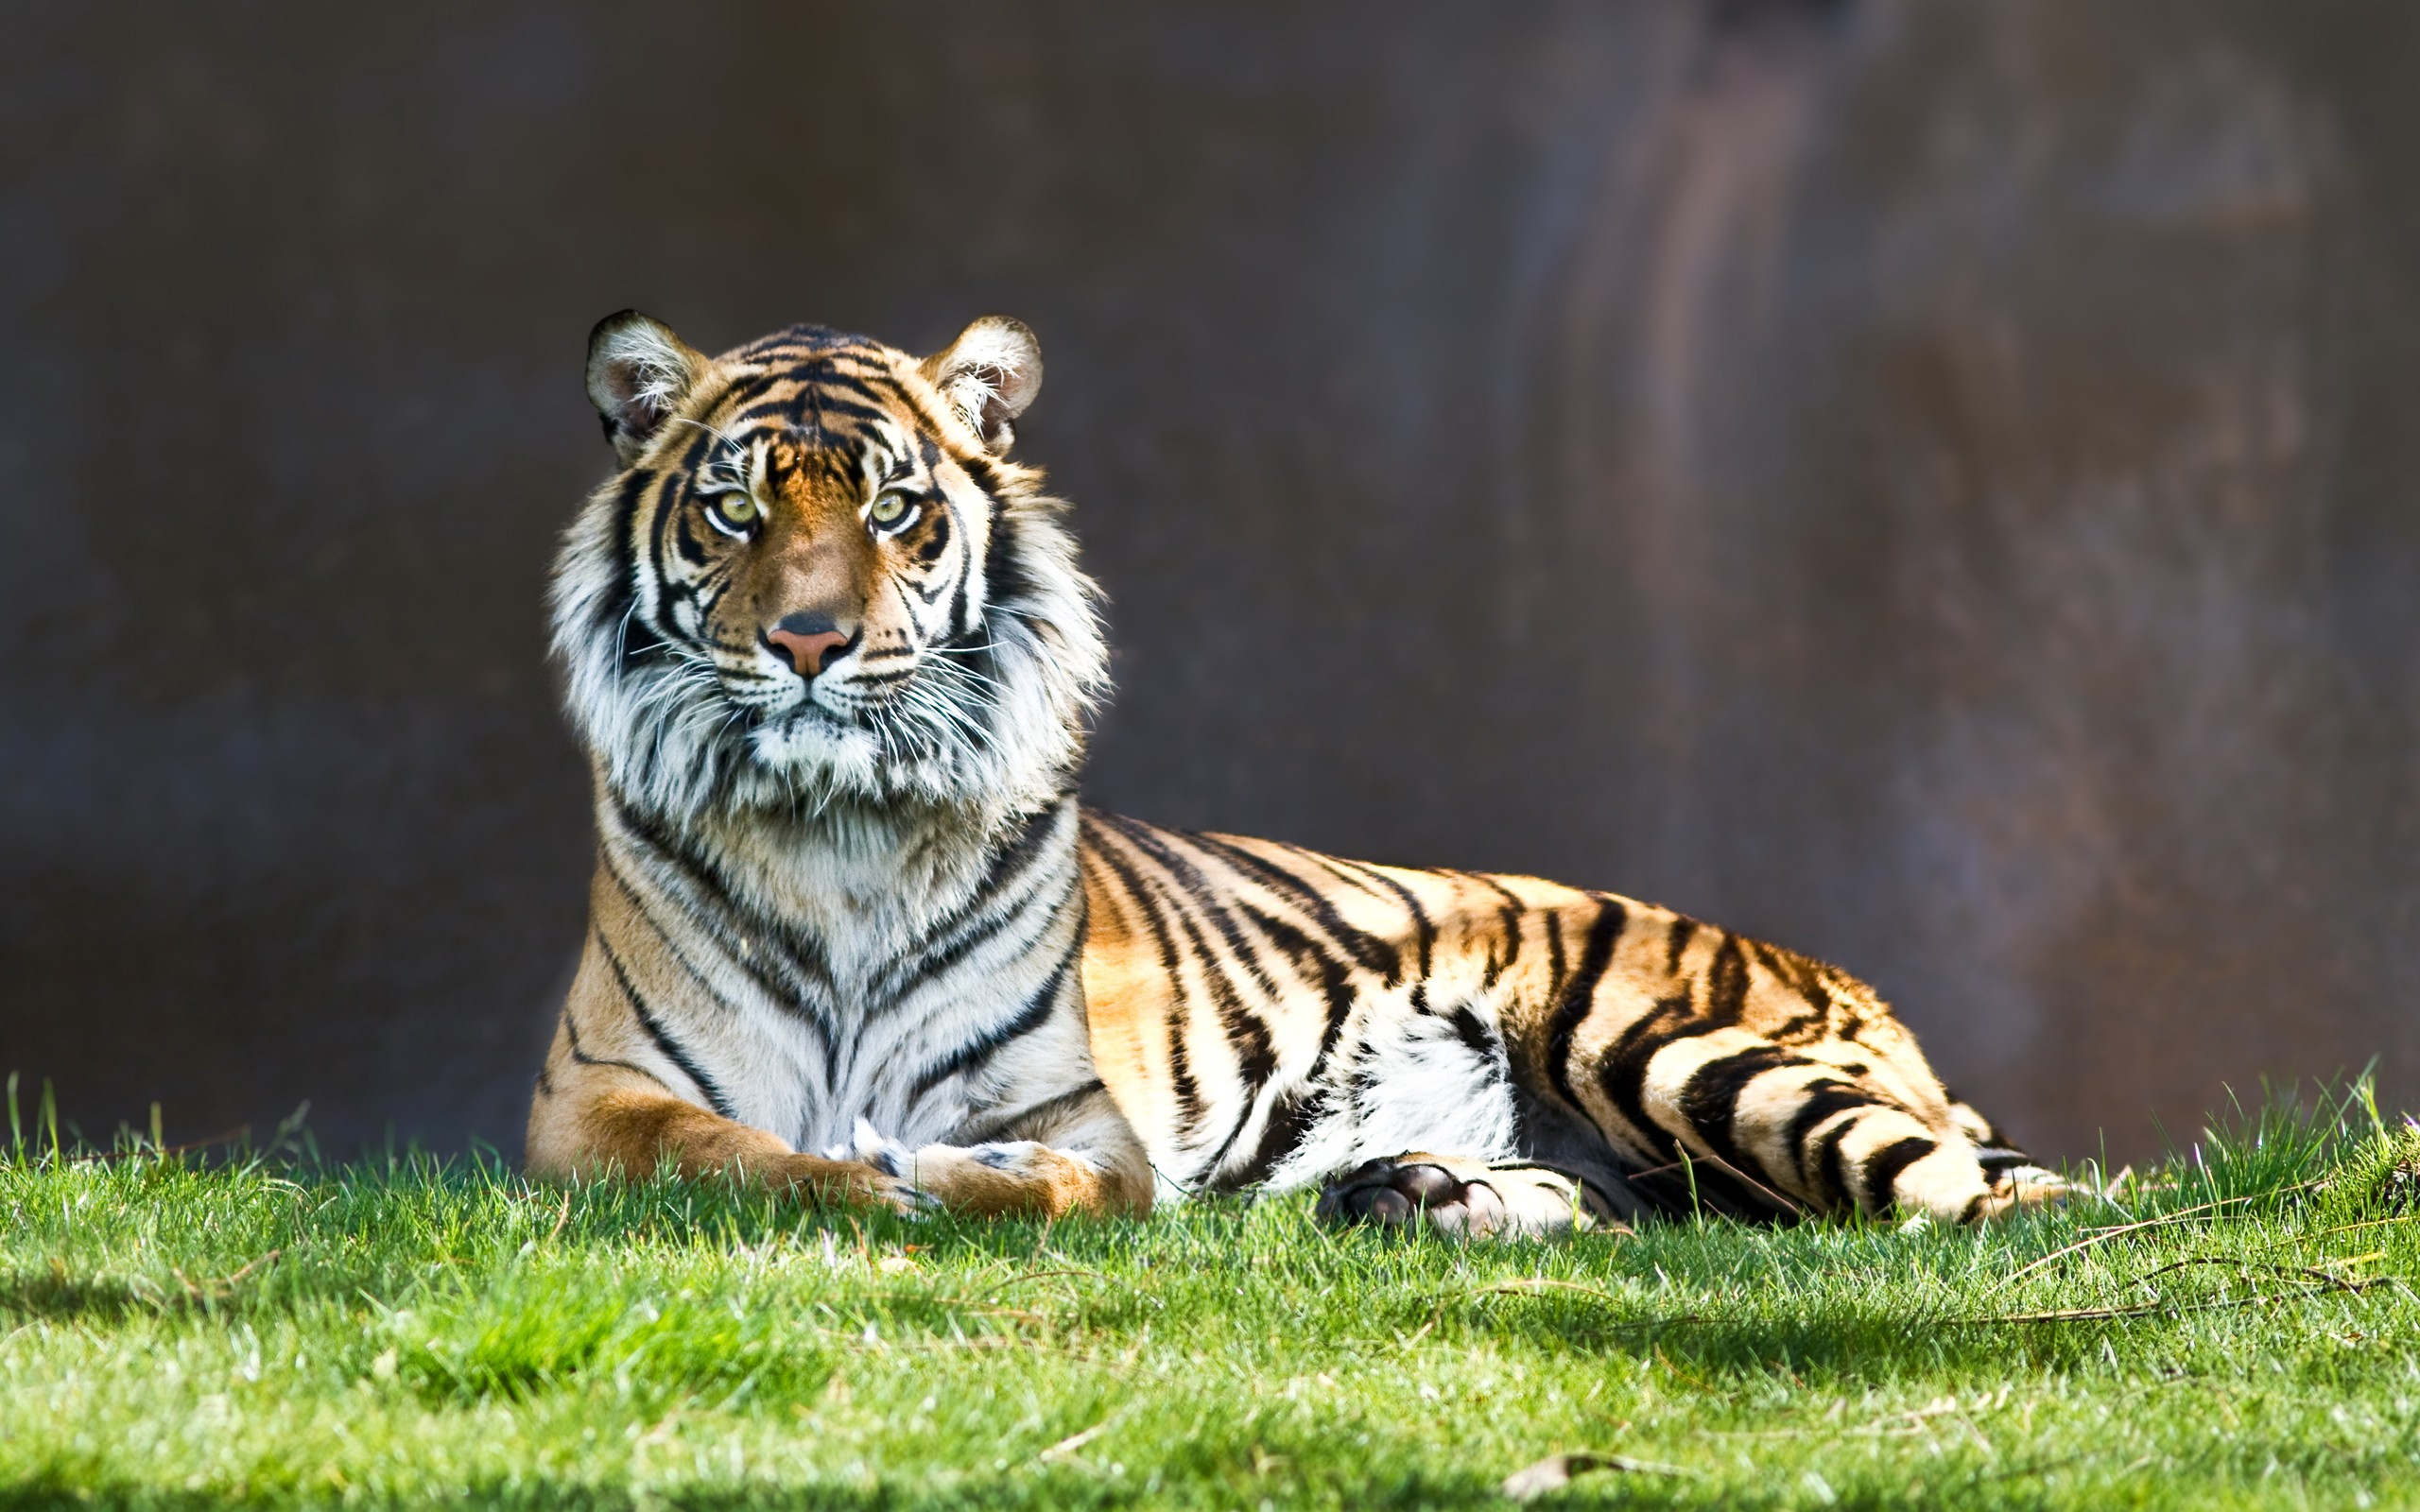 Tiger Staring At Camera Wide